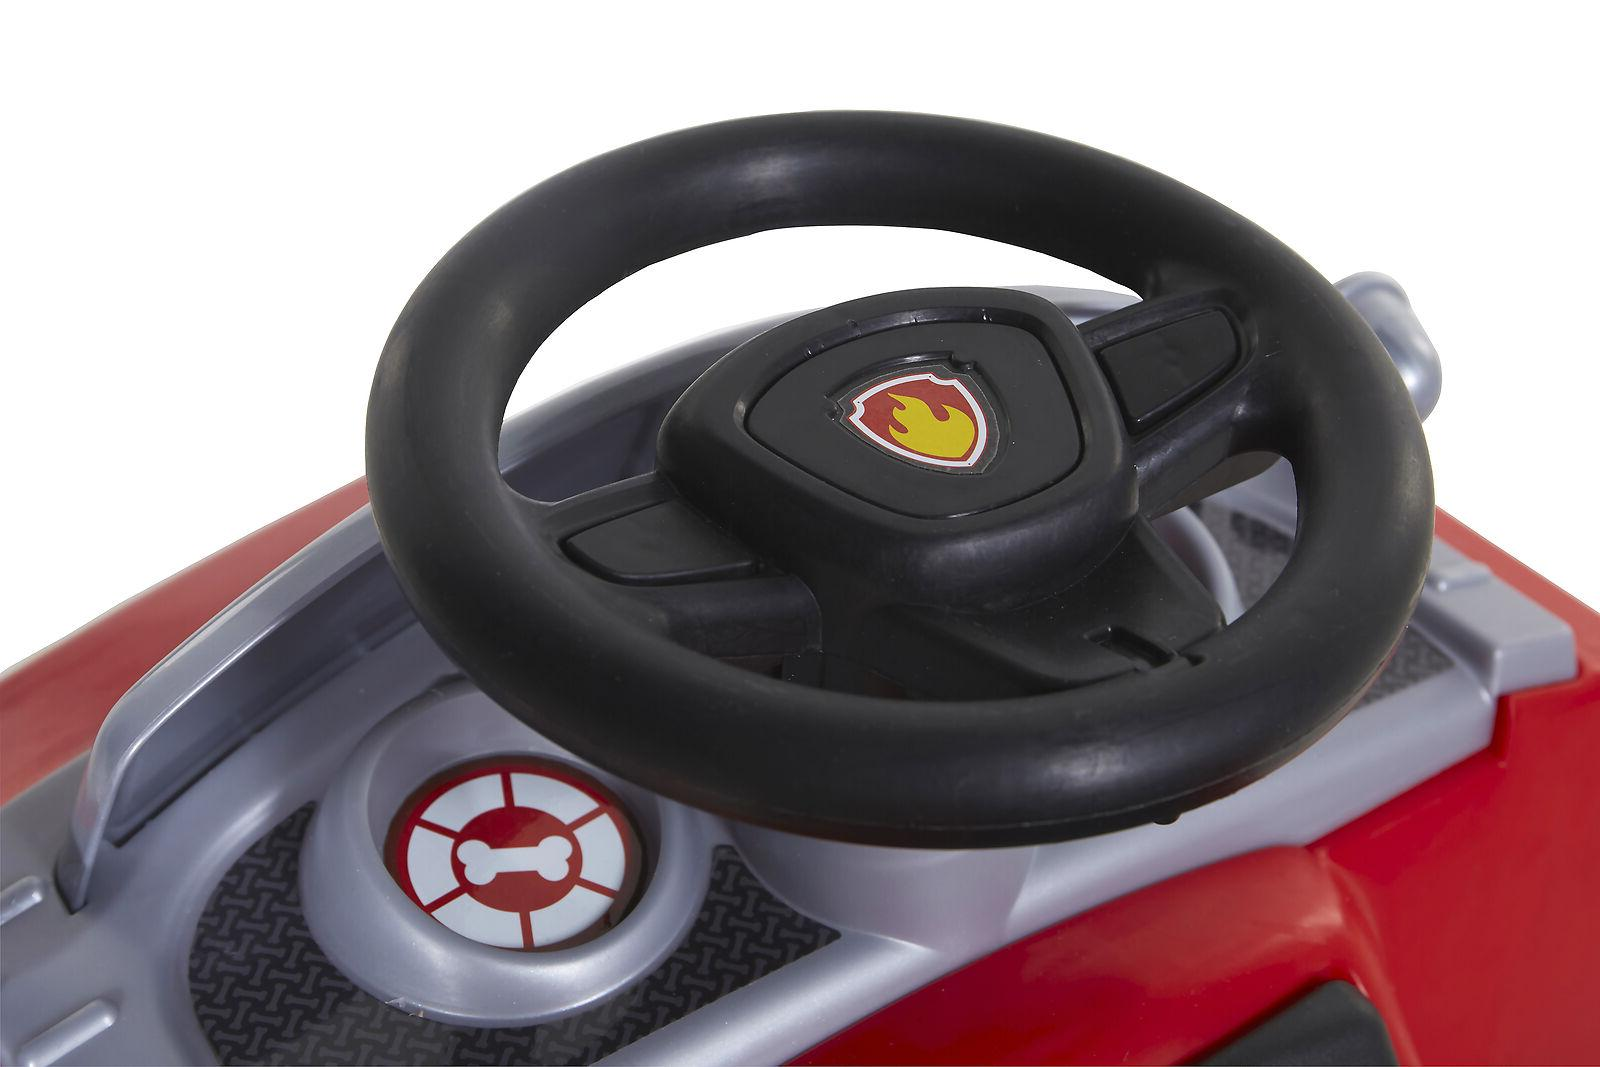 6 Volt Ride-On for Kids With Realistic Firetruck